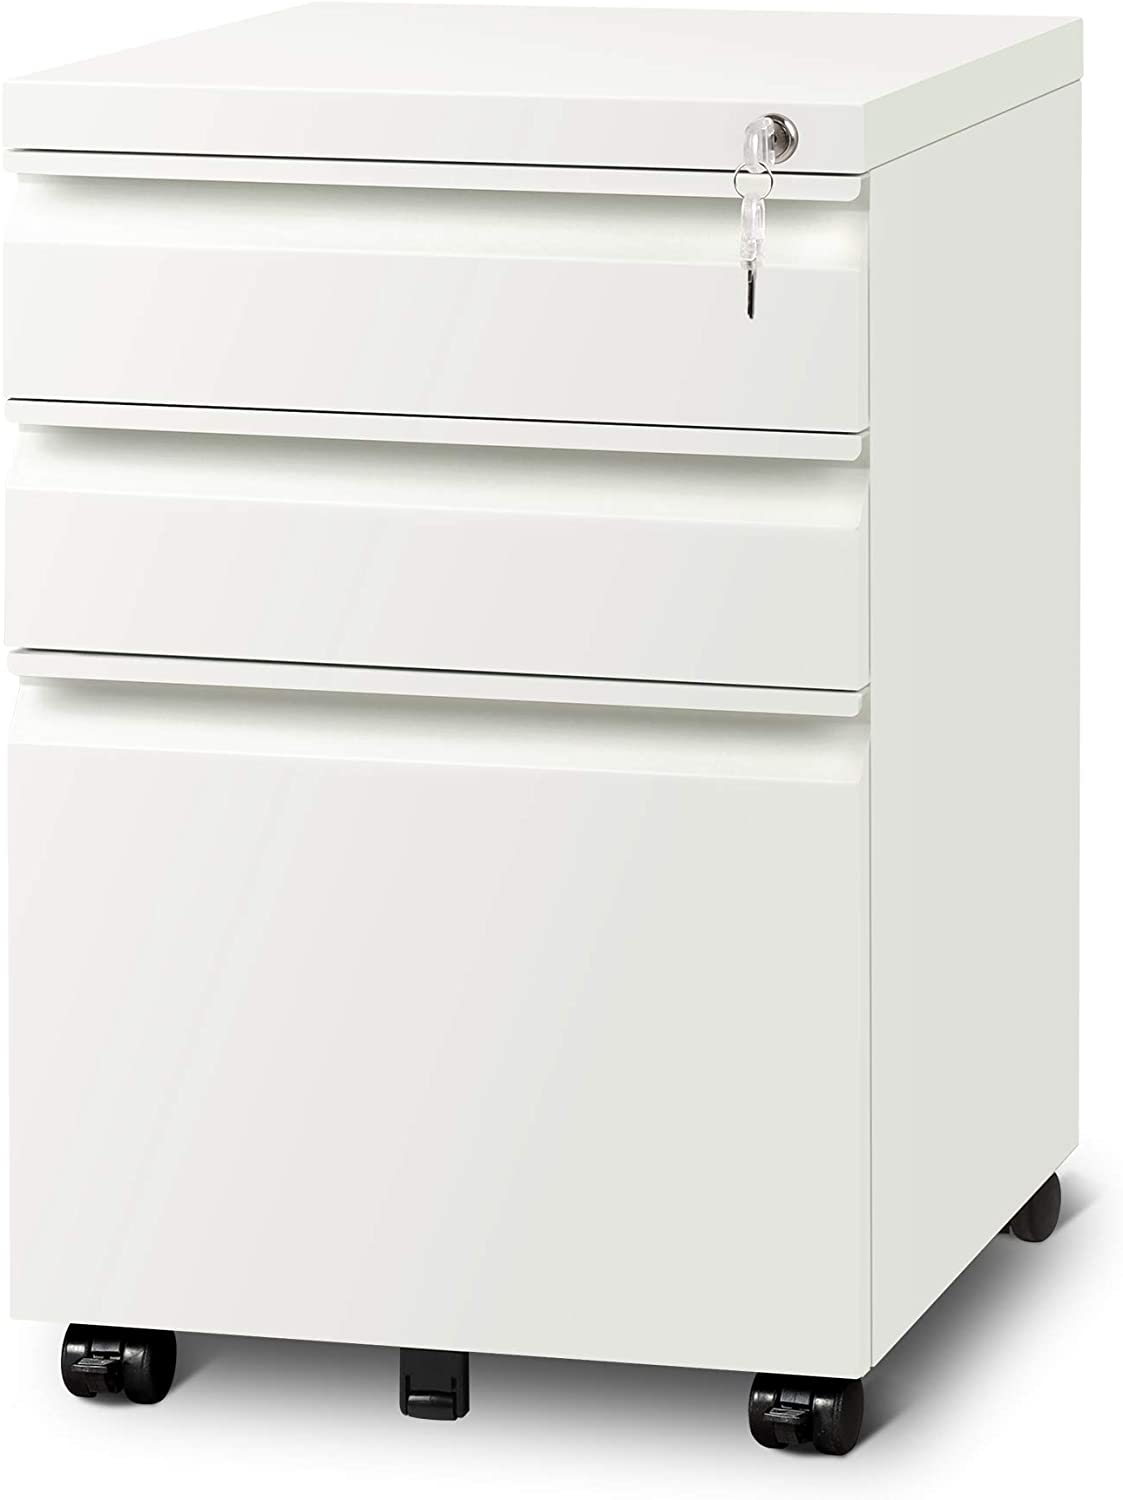 Steel Construction 3-Drawer Mobile Metal File Cabinet with Lock and Keys,Fully Assembled Except Casters,White